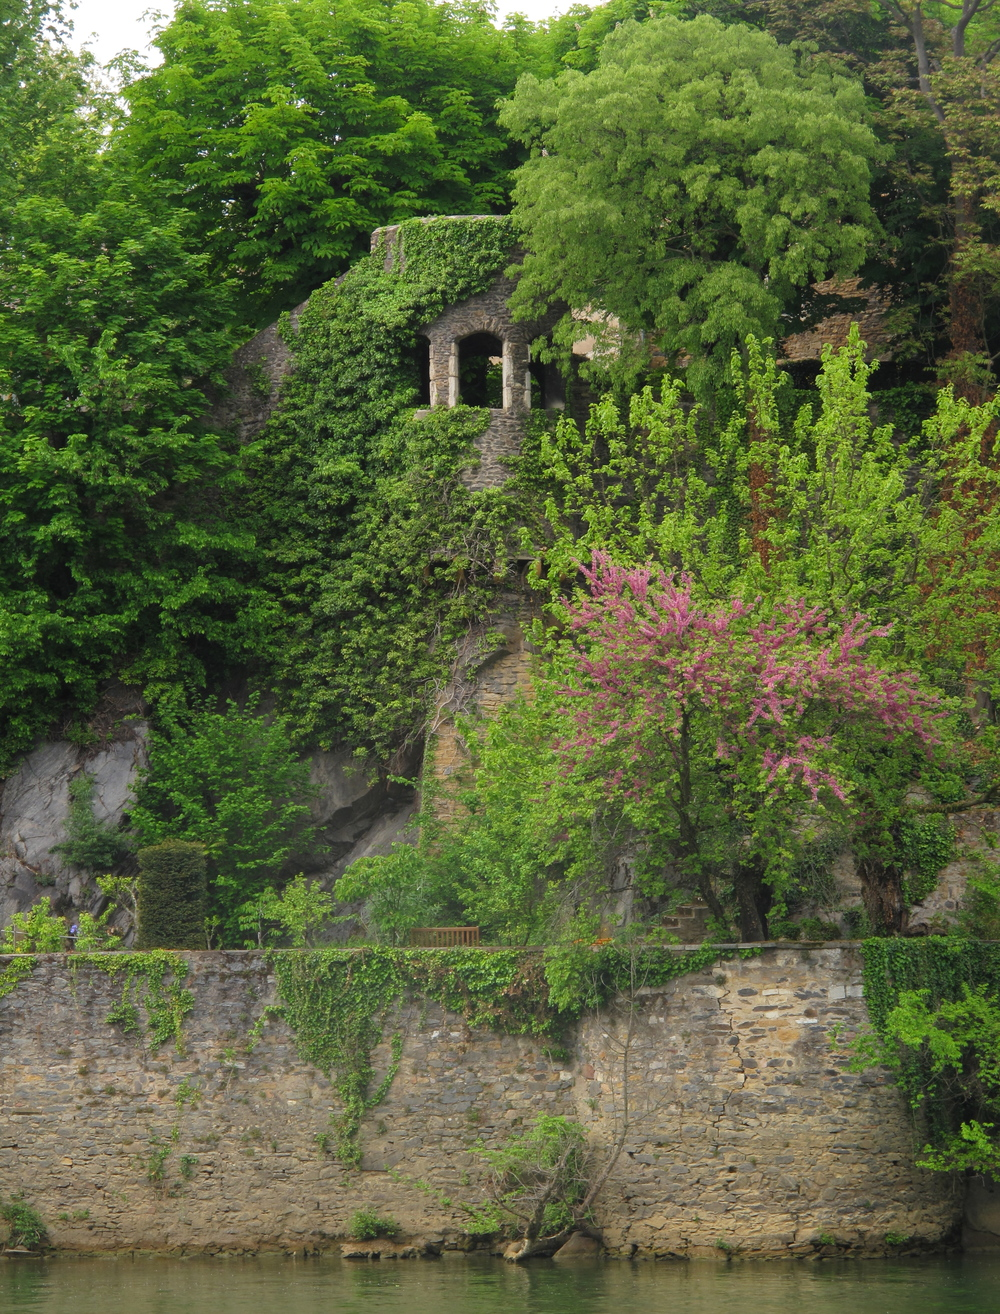 An overgrown castle on a small island in the depths of Lyon